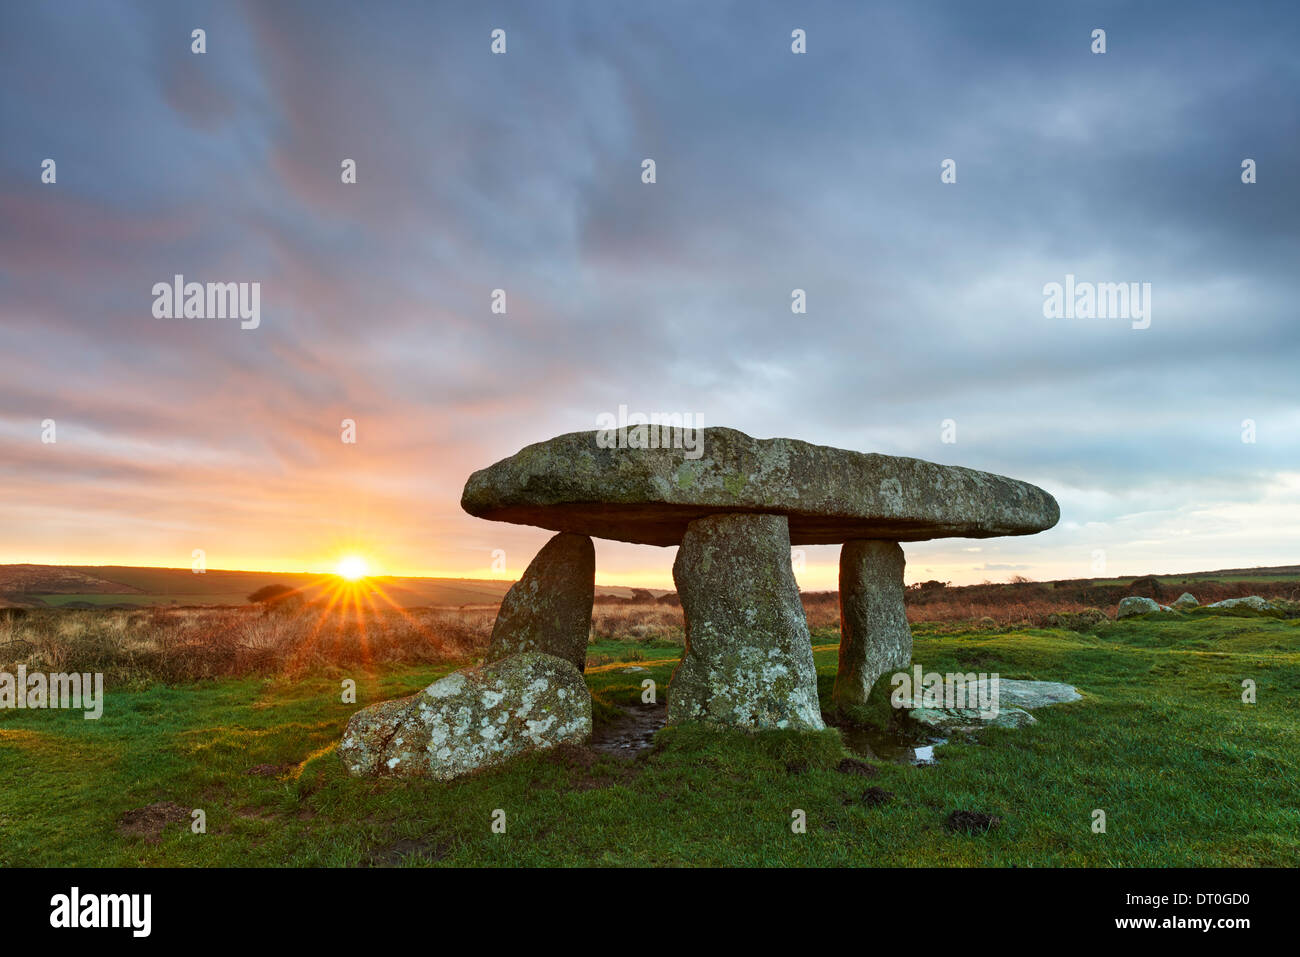 A brief moment of sunlight streaking across the dawn sky at Lanyon Quoit - Stock Image